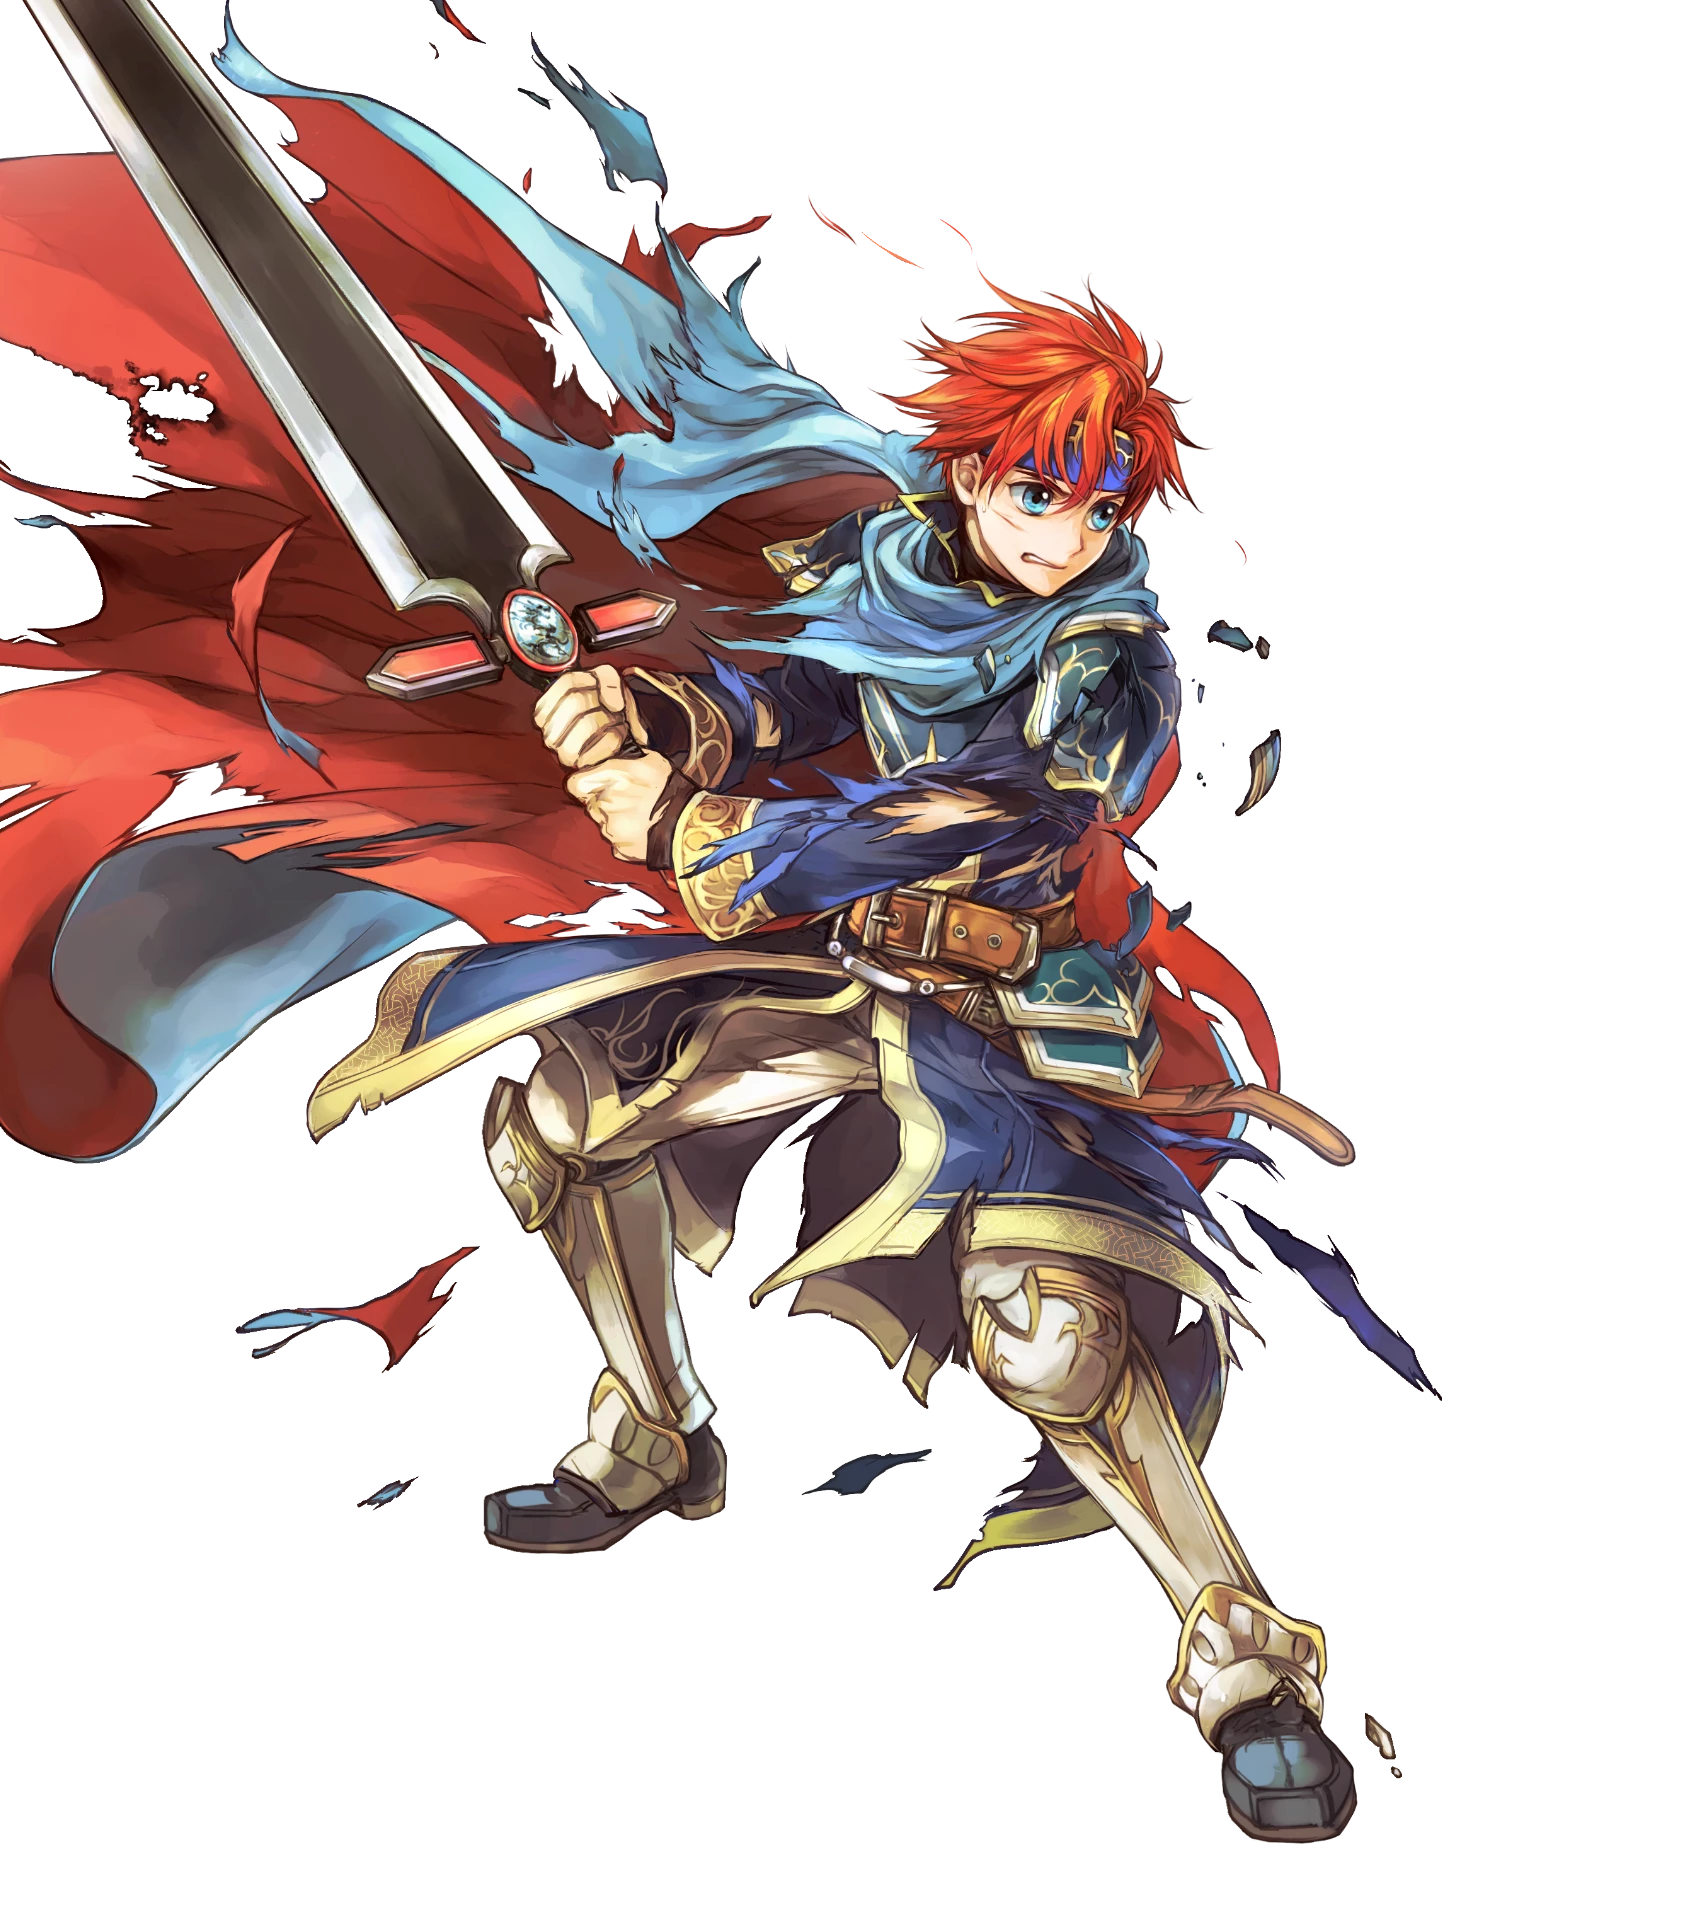 Full Injured Roy Brave Heroes Png 1684 1920 Roy Fire Emblem Fire Emblem Fire Emblem Heroes